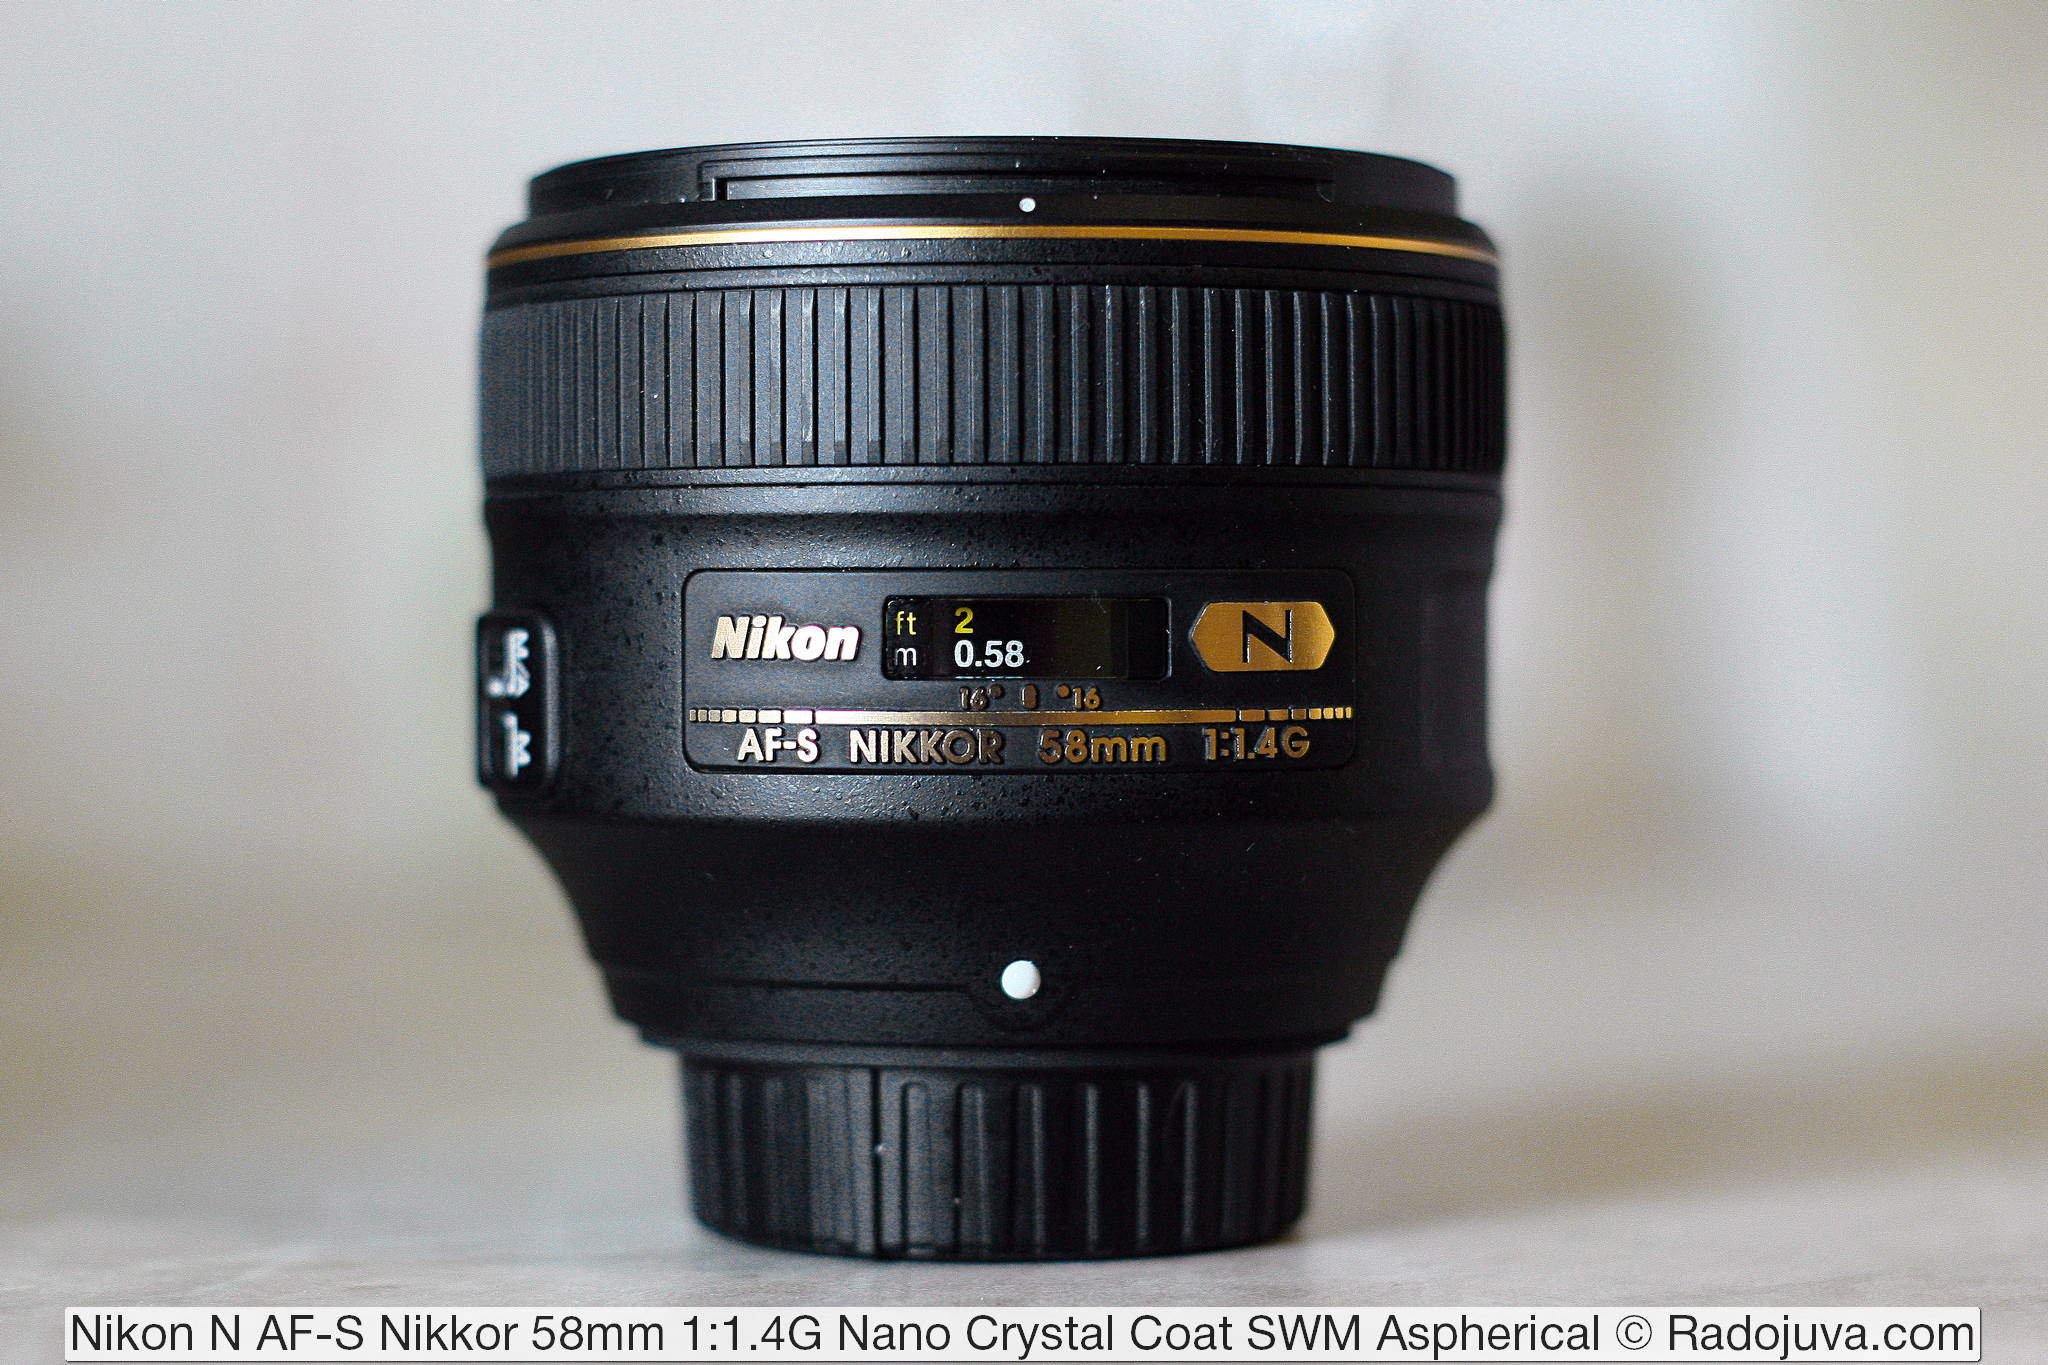 Nikon N AF-S Nikkor 58mm 1:1.4G Nano Crystal Coat SWM Aspherical